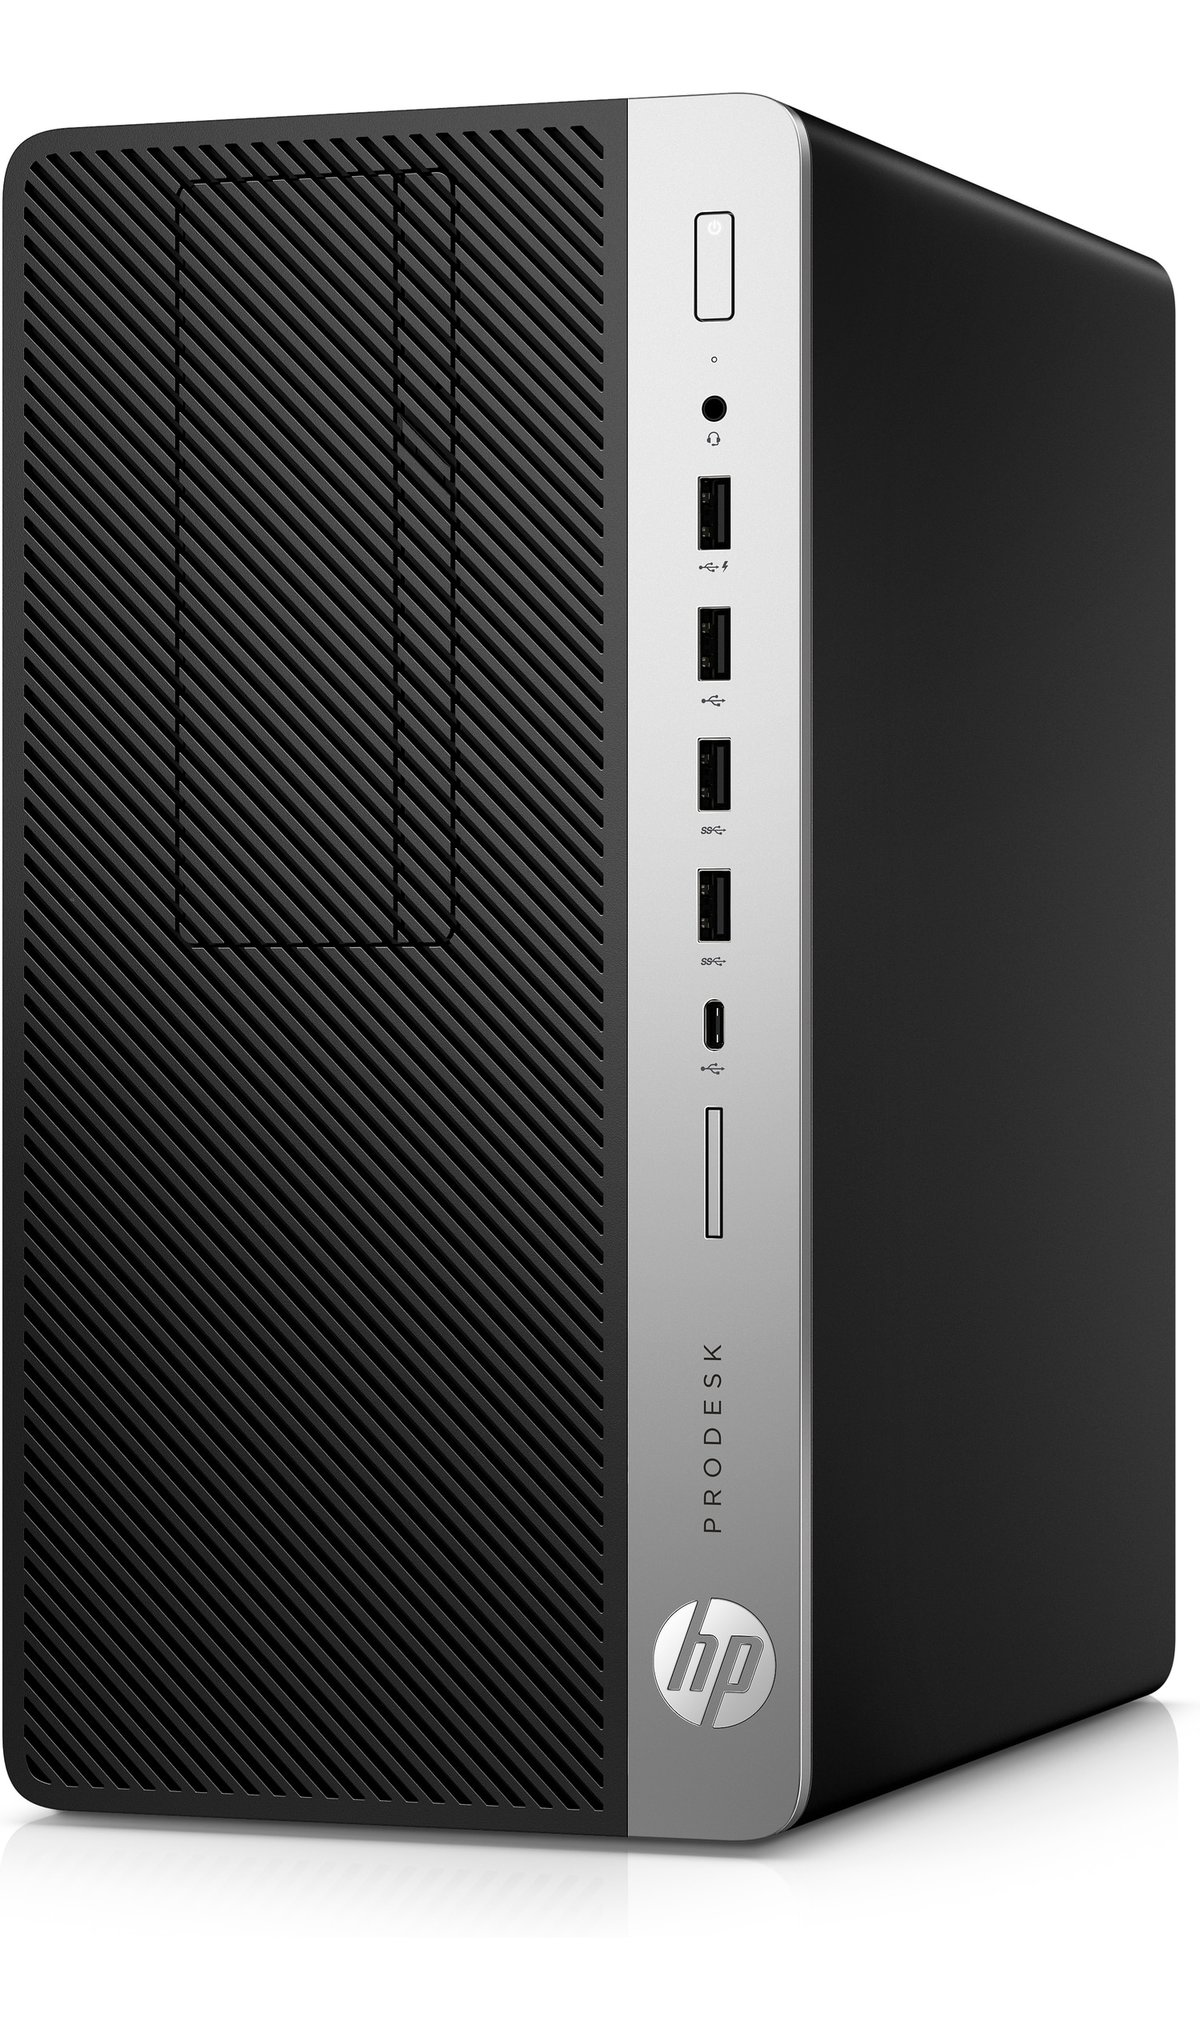 slide 3 of 3,show larger image, hp prodesk 600 g4 microtower pc